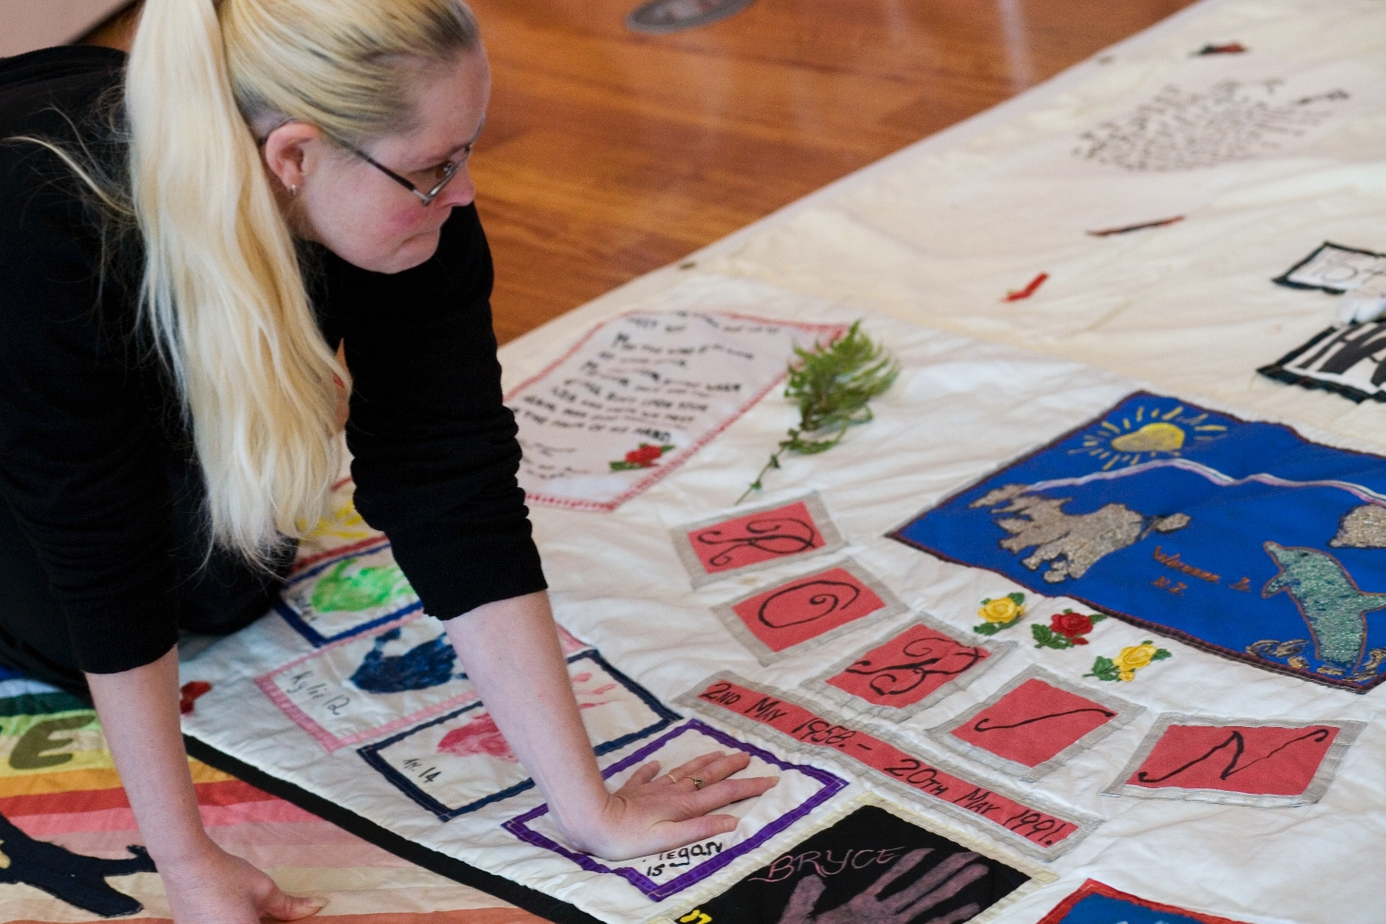 A woman places her hand on the part of a quilt that has an embroidered version of her hand on it